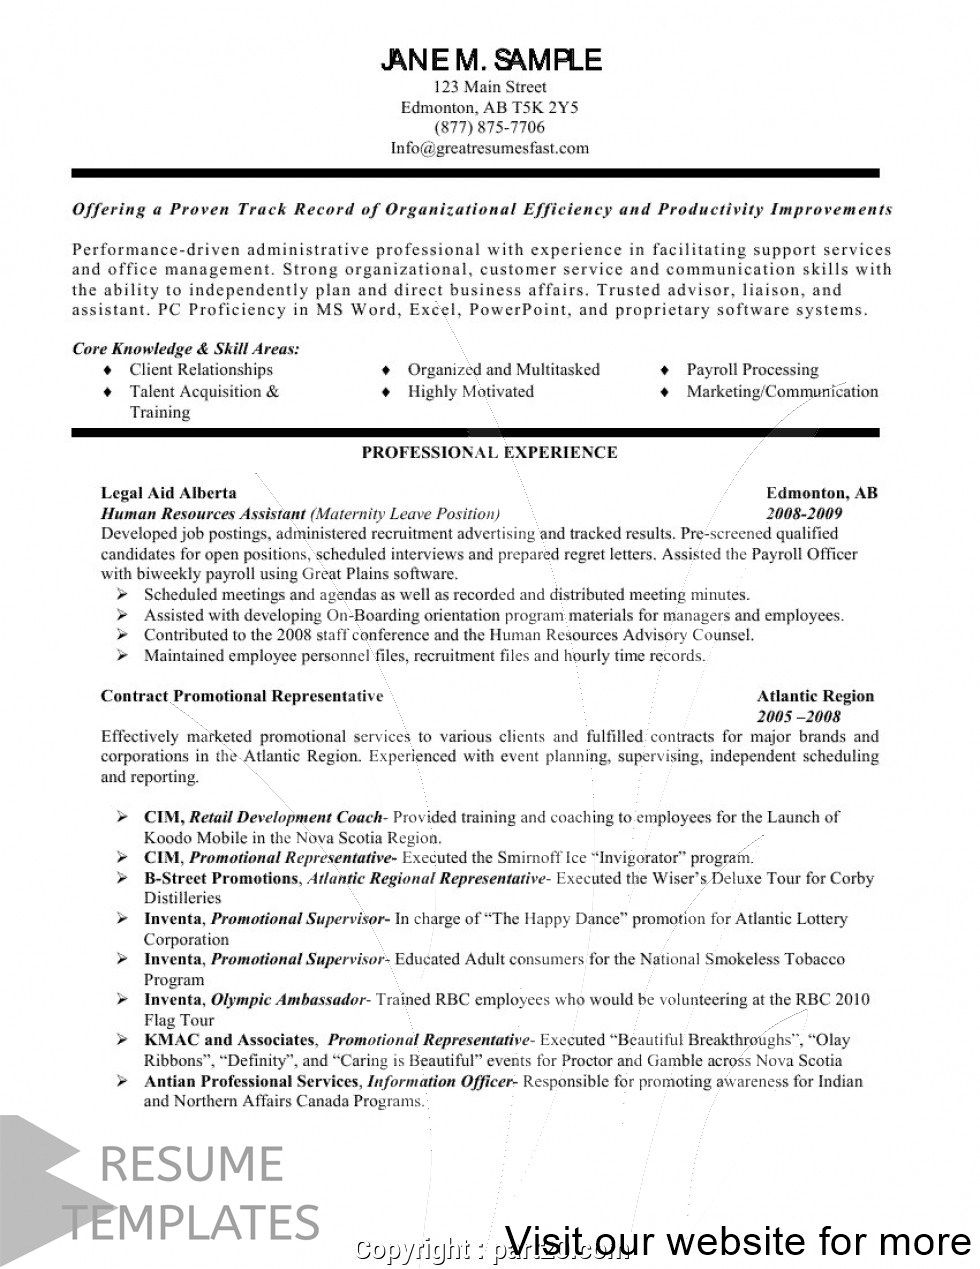 14++ General resume objective examples for college students ideas in 2021